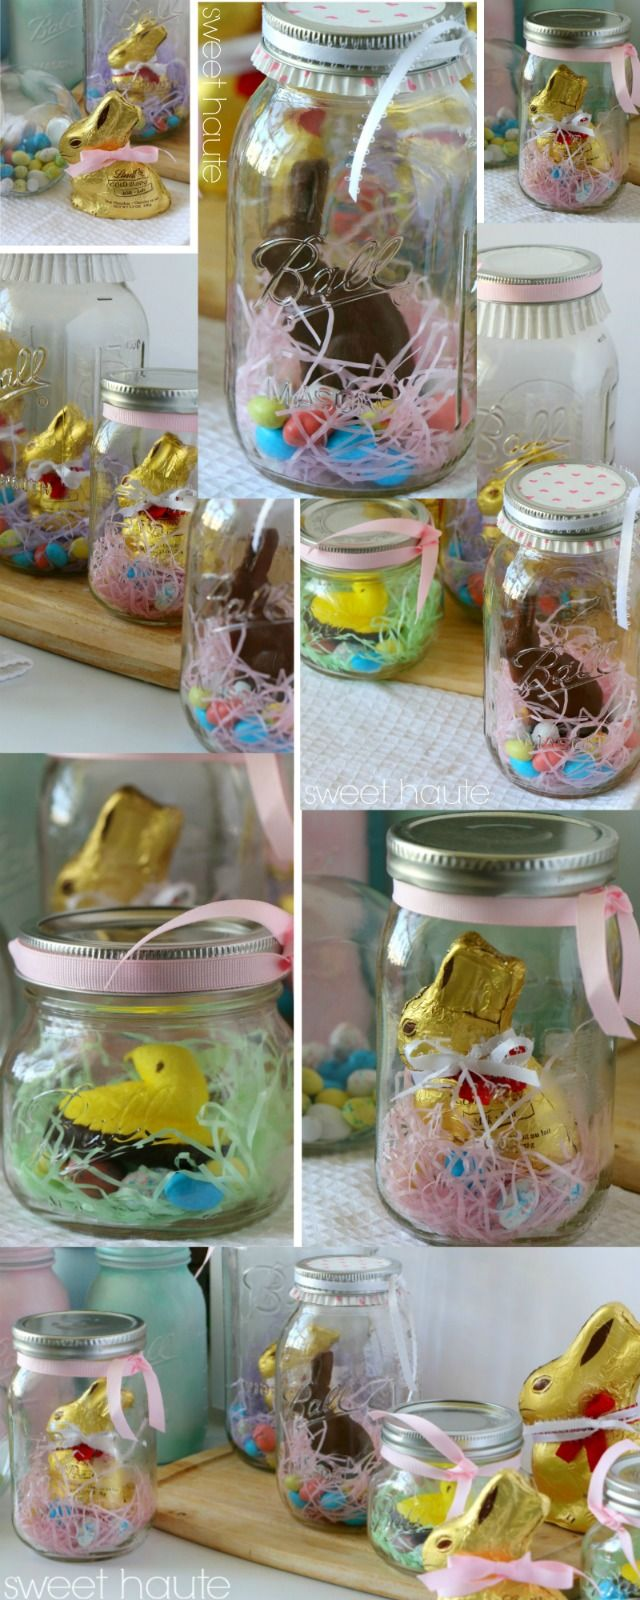 best images about crafts on pinterest disney beauty and the